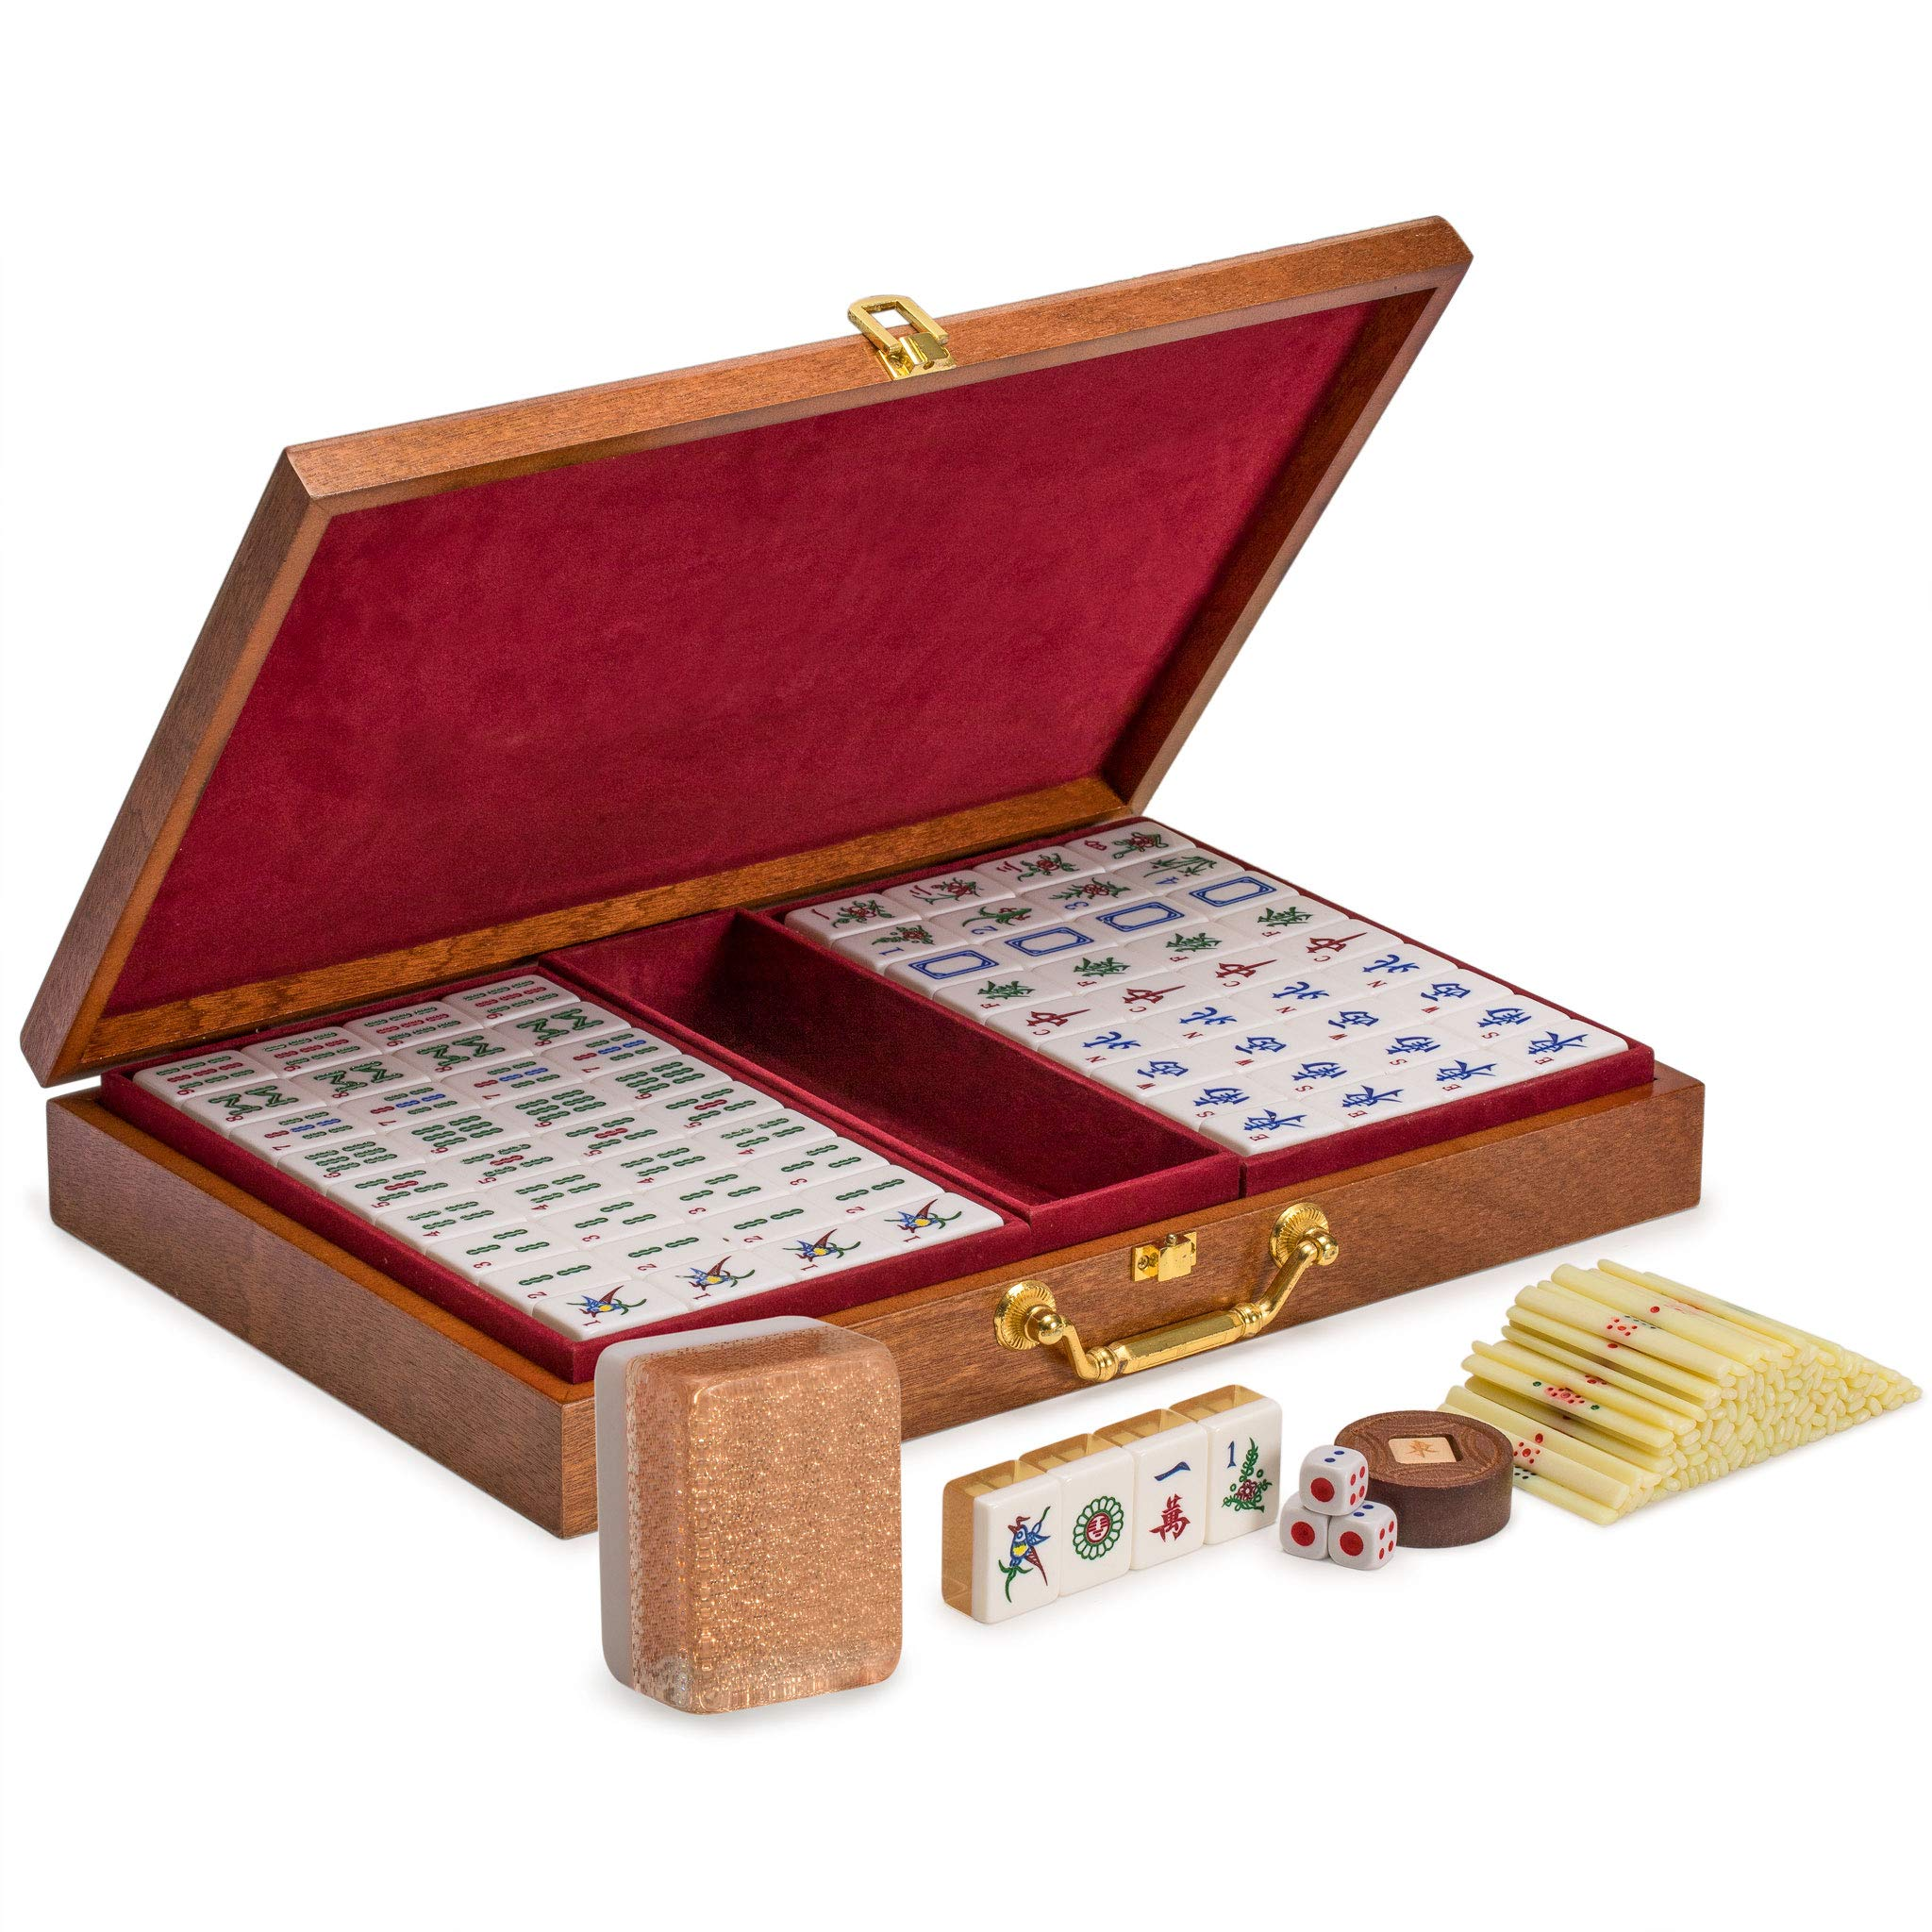 Yellow Mountain Imports Chinese Mahjong Set, Champagne Gold - with Wood Veneer Case - Medium Size Tiles: 1.3 x 1 x 0.7 inches (34mm x 25mm x 19mm) - for Chinese Style Gameplay Only